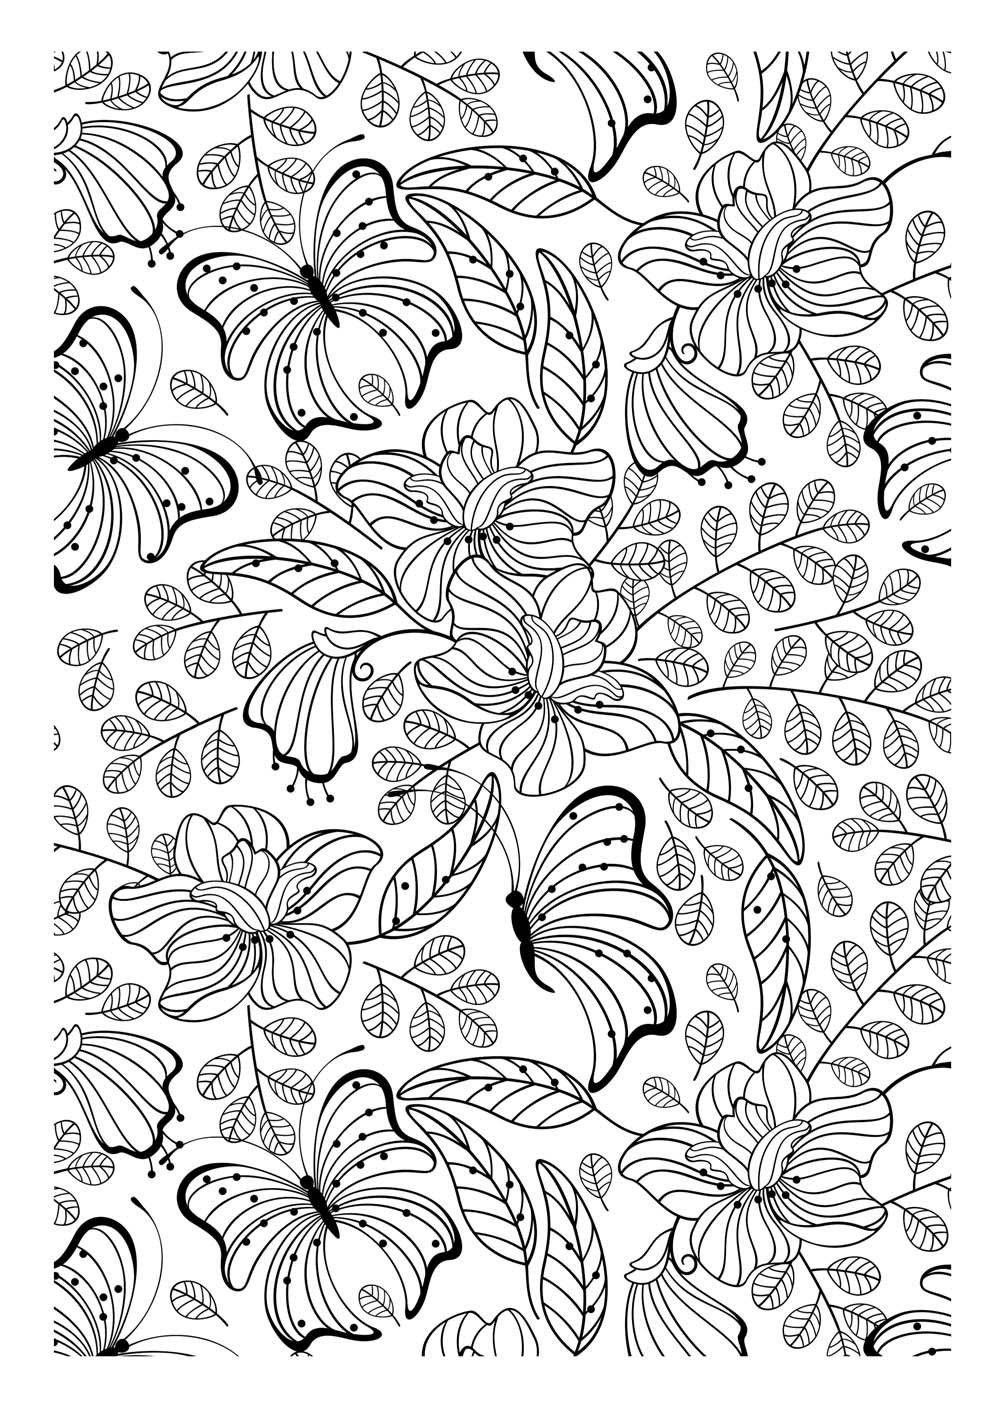 Art-thérapie : 100 coloriages anti-stress: Amazon.de: Collectif ...